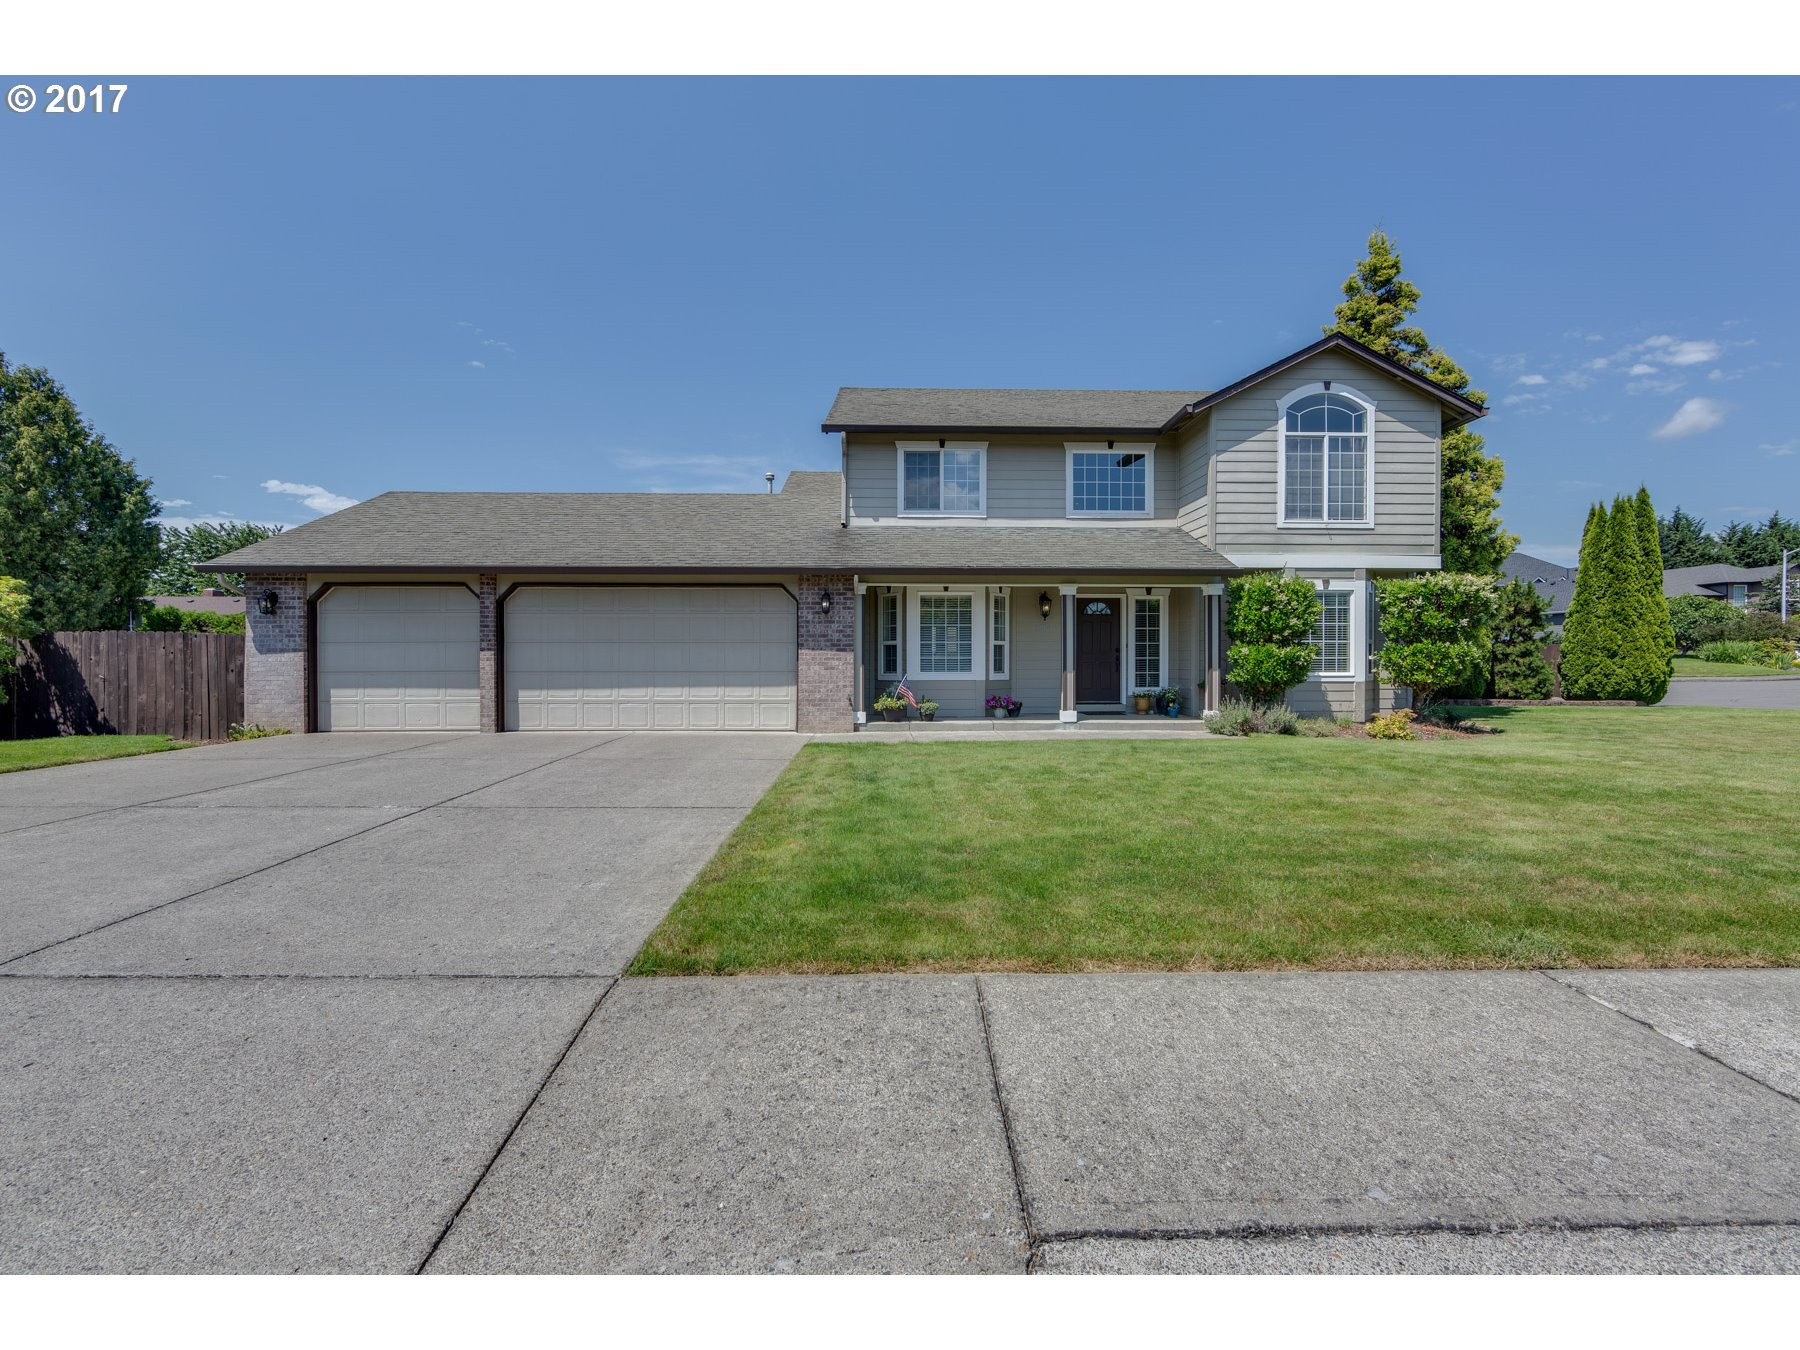 3006 NW 124TH ST, Vancouver, WA 98685